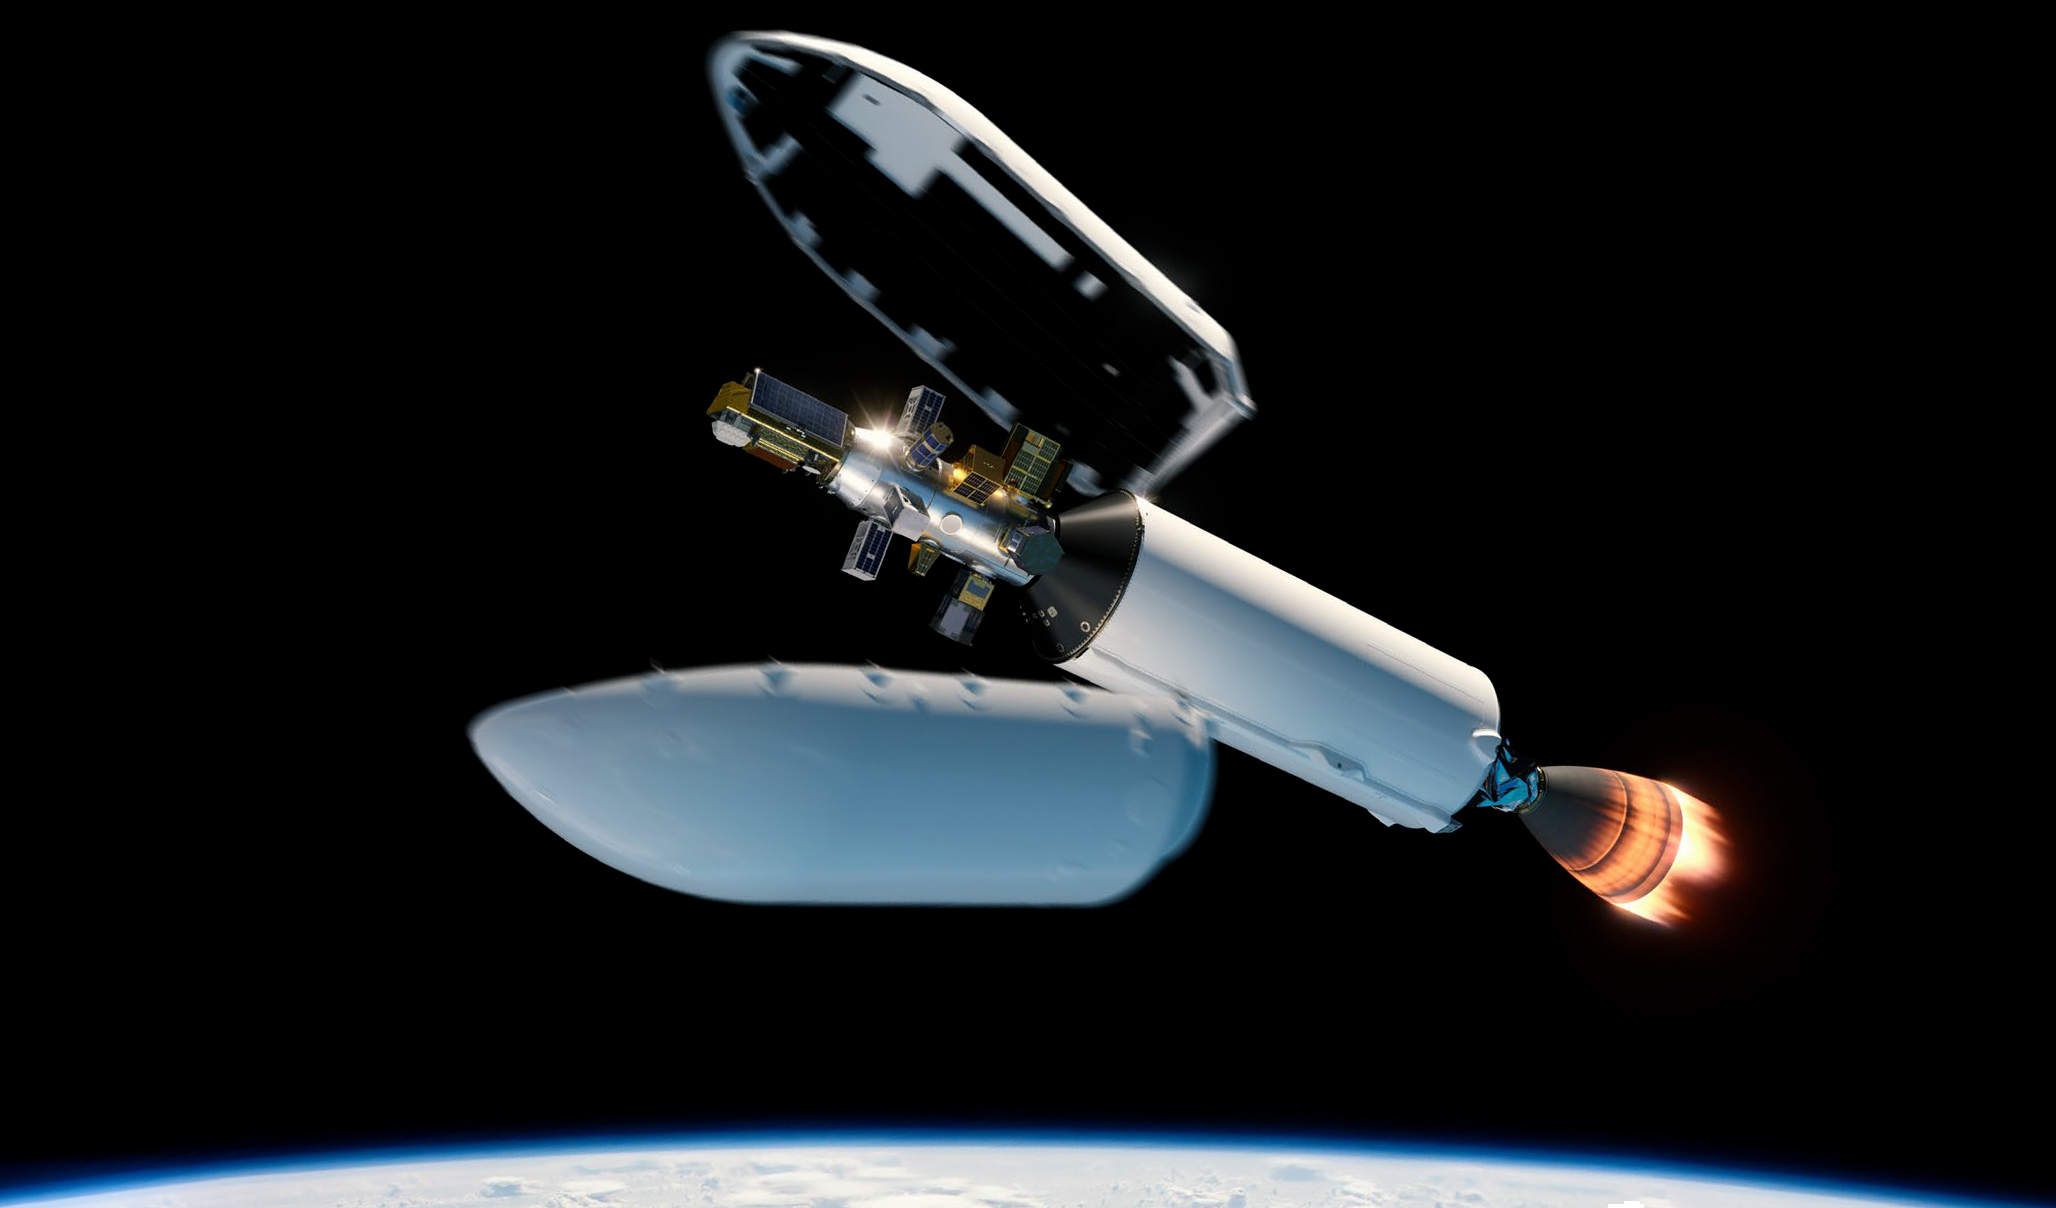 Smallsat Program Falcon 9 S2 render (SpaceX) 2 edit